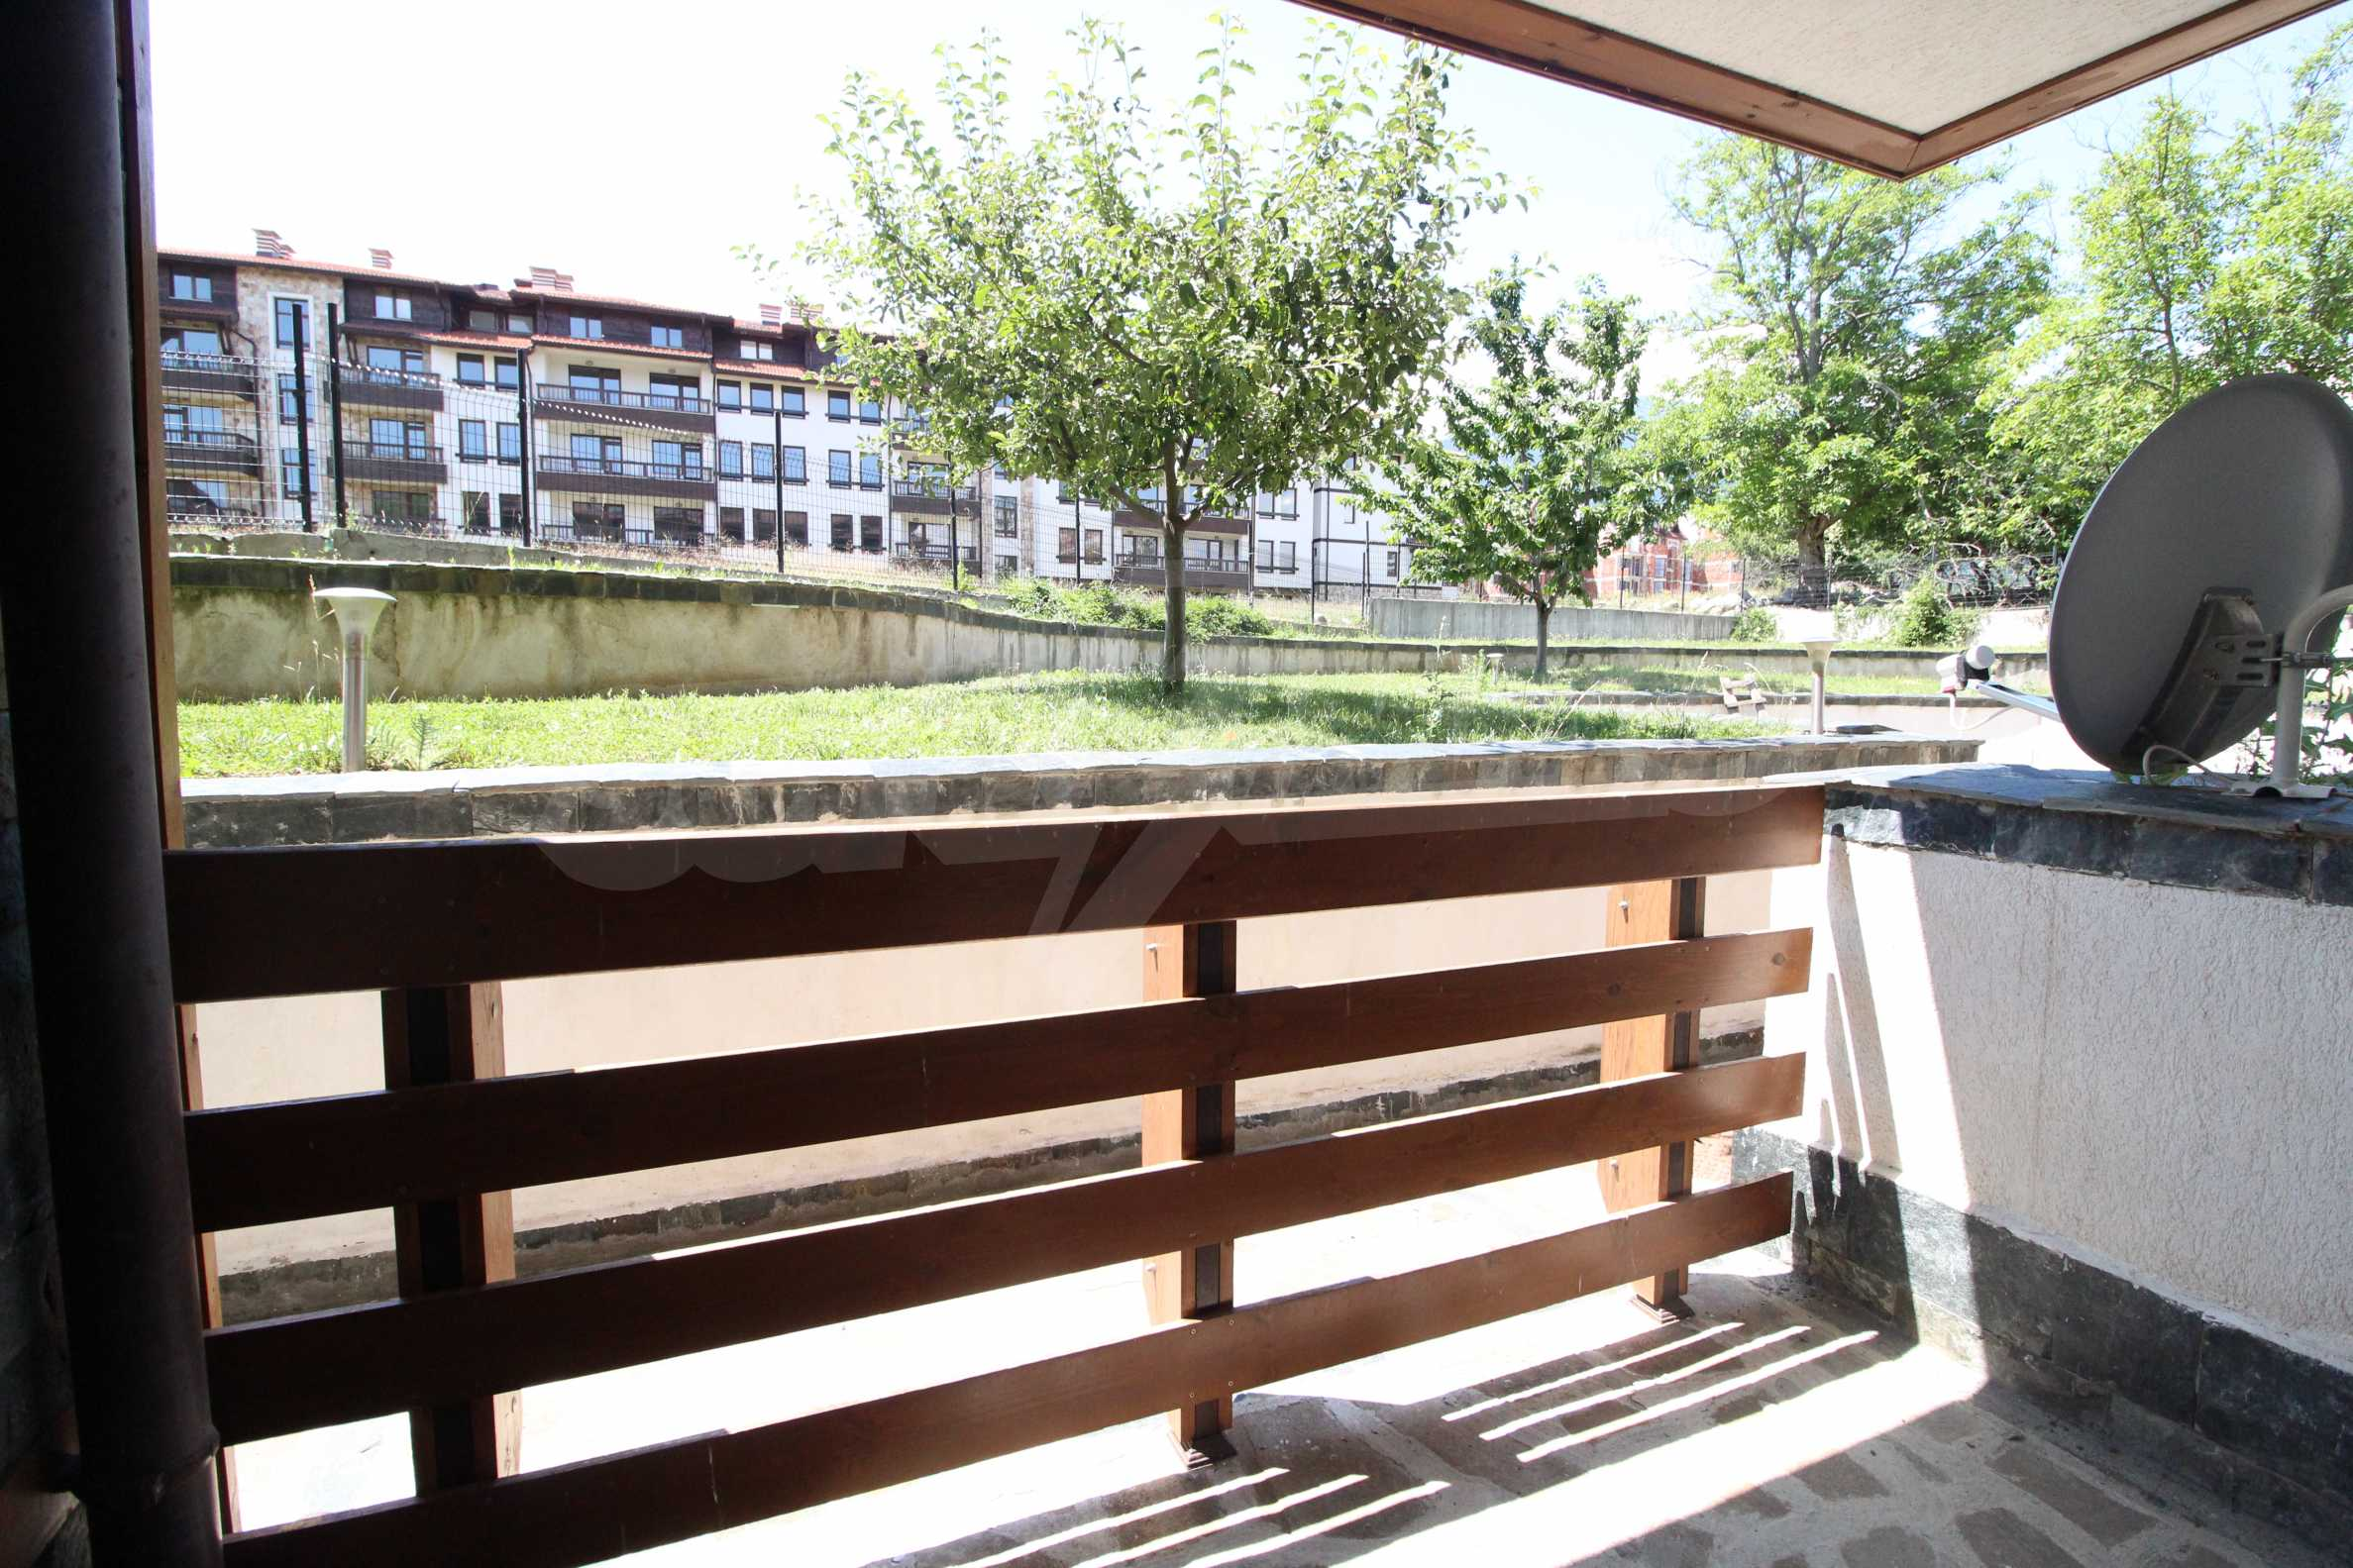 Studio for sale in the best gated complex in Bansko 5